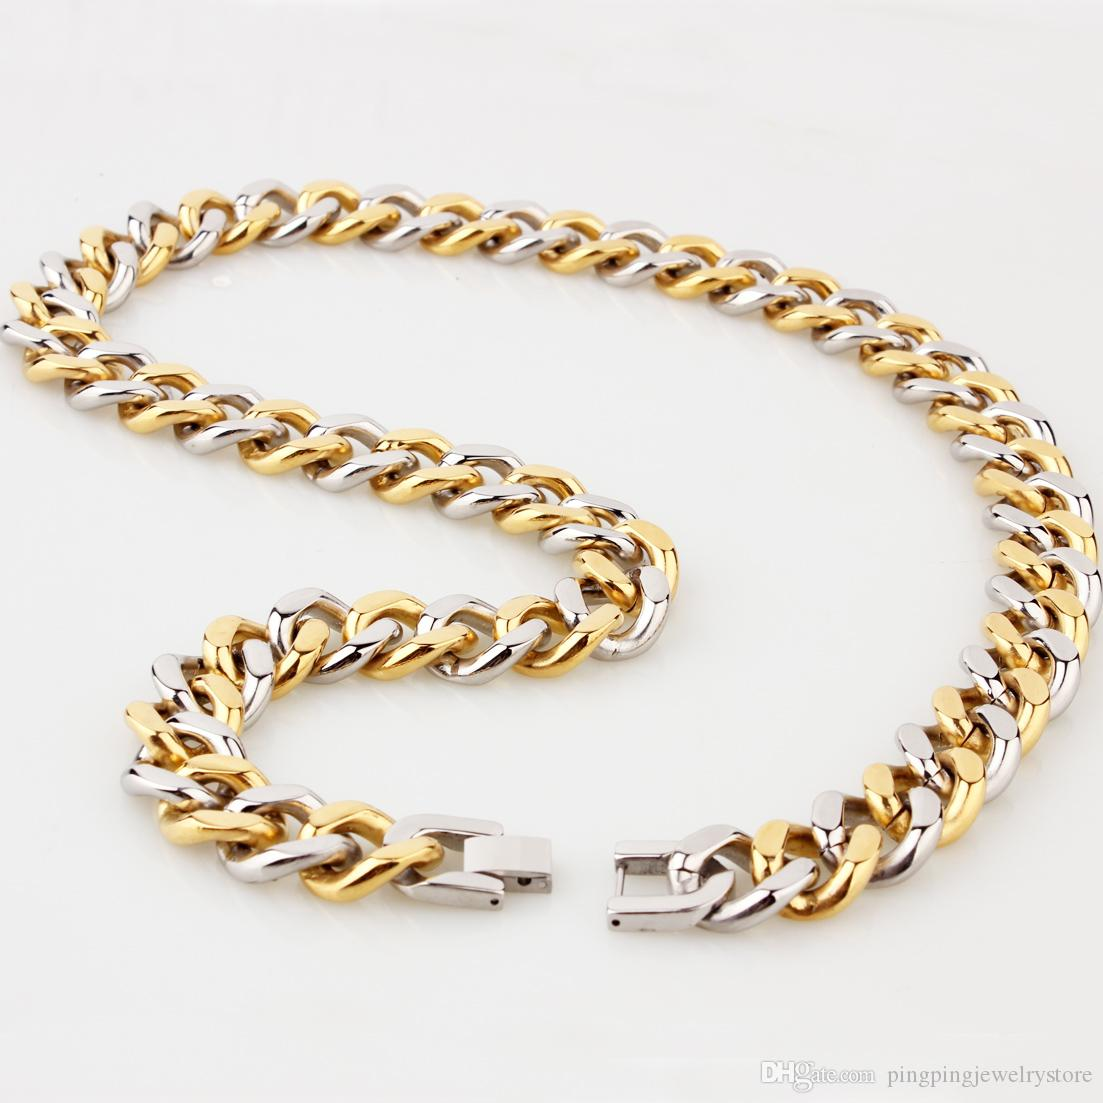 15mm Gold Plated 316L Stainless Steel Curb Bracelet Men Boys Chain Link Jewelry